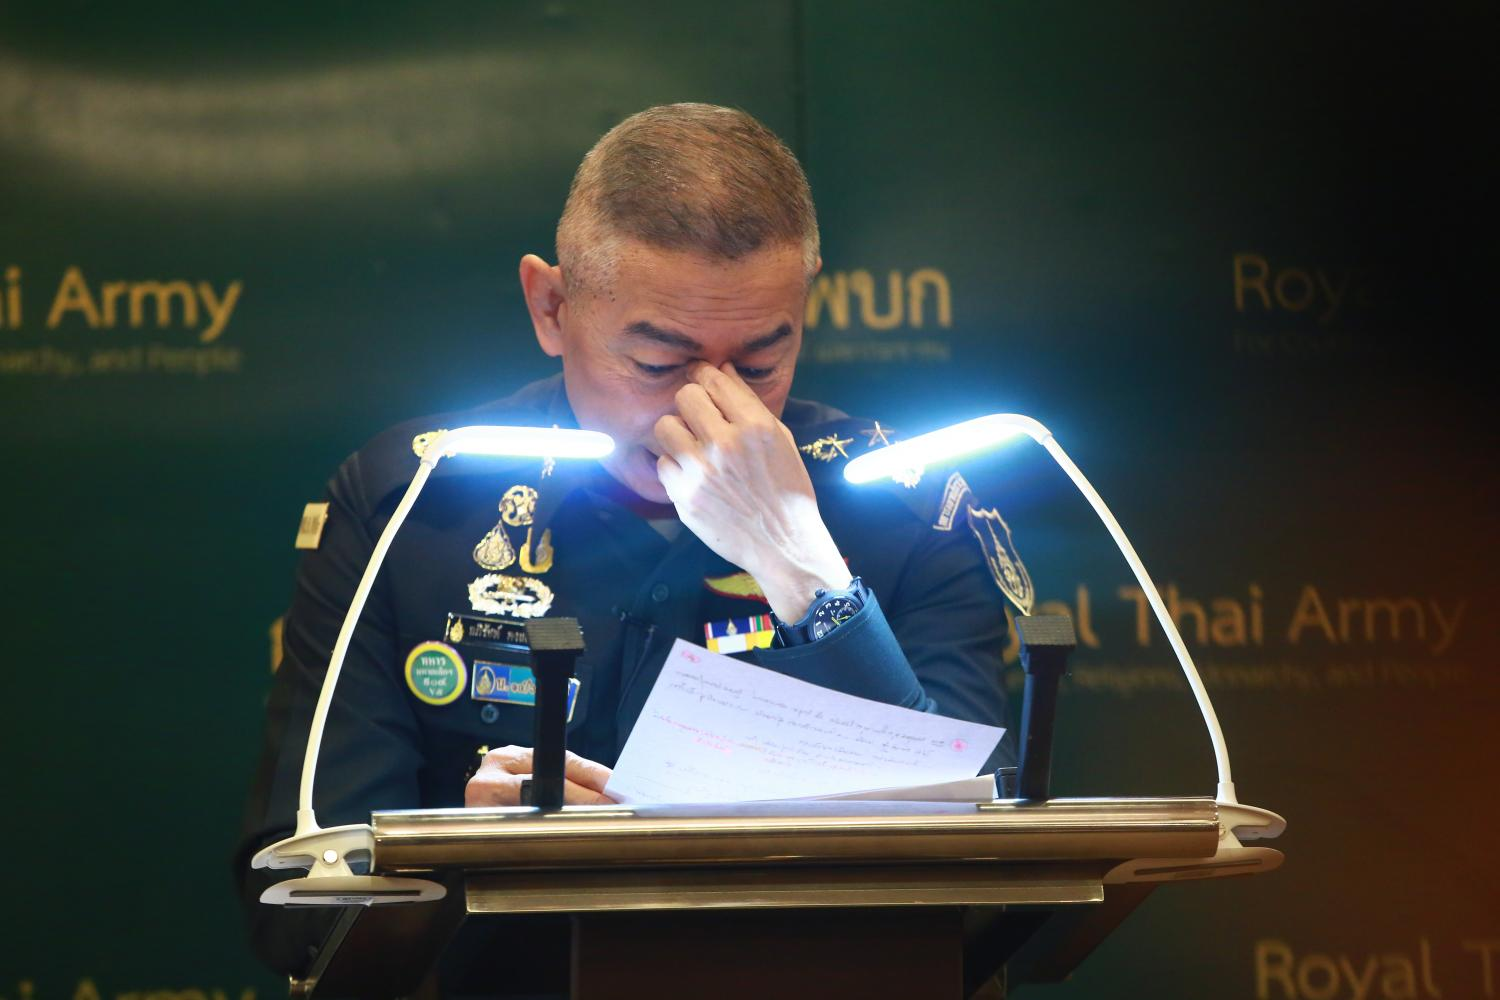 Army commander-in-chief Gen Apirat Kongsompong wipes away tears during a press conference on Tuesday while promising an overhaul of the army. (Photo by Somchai Poomlard)